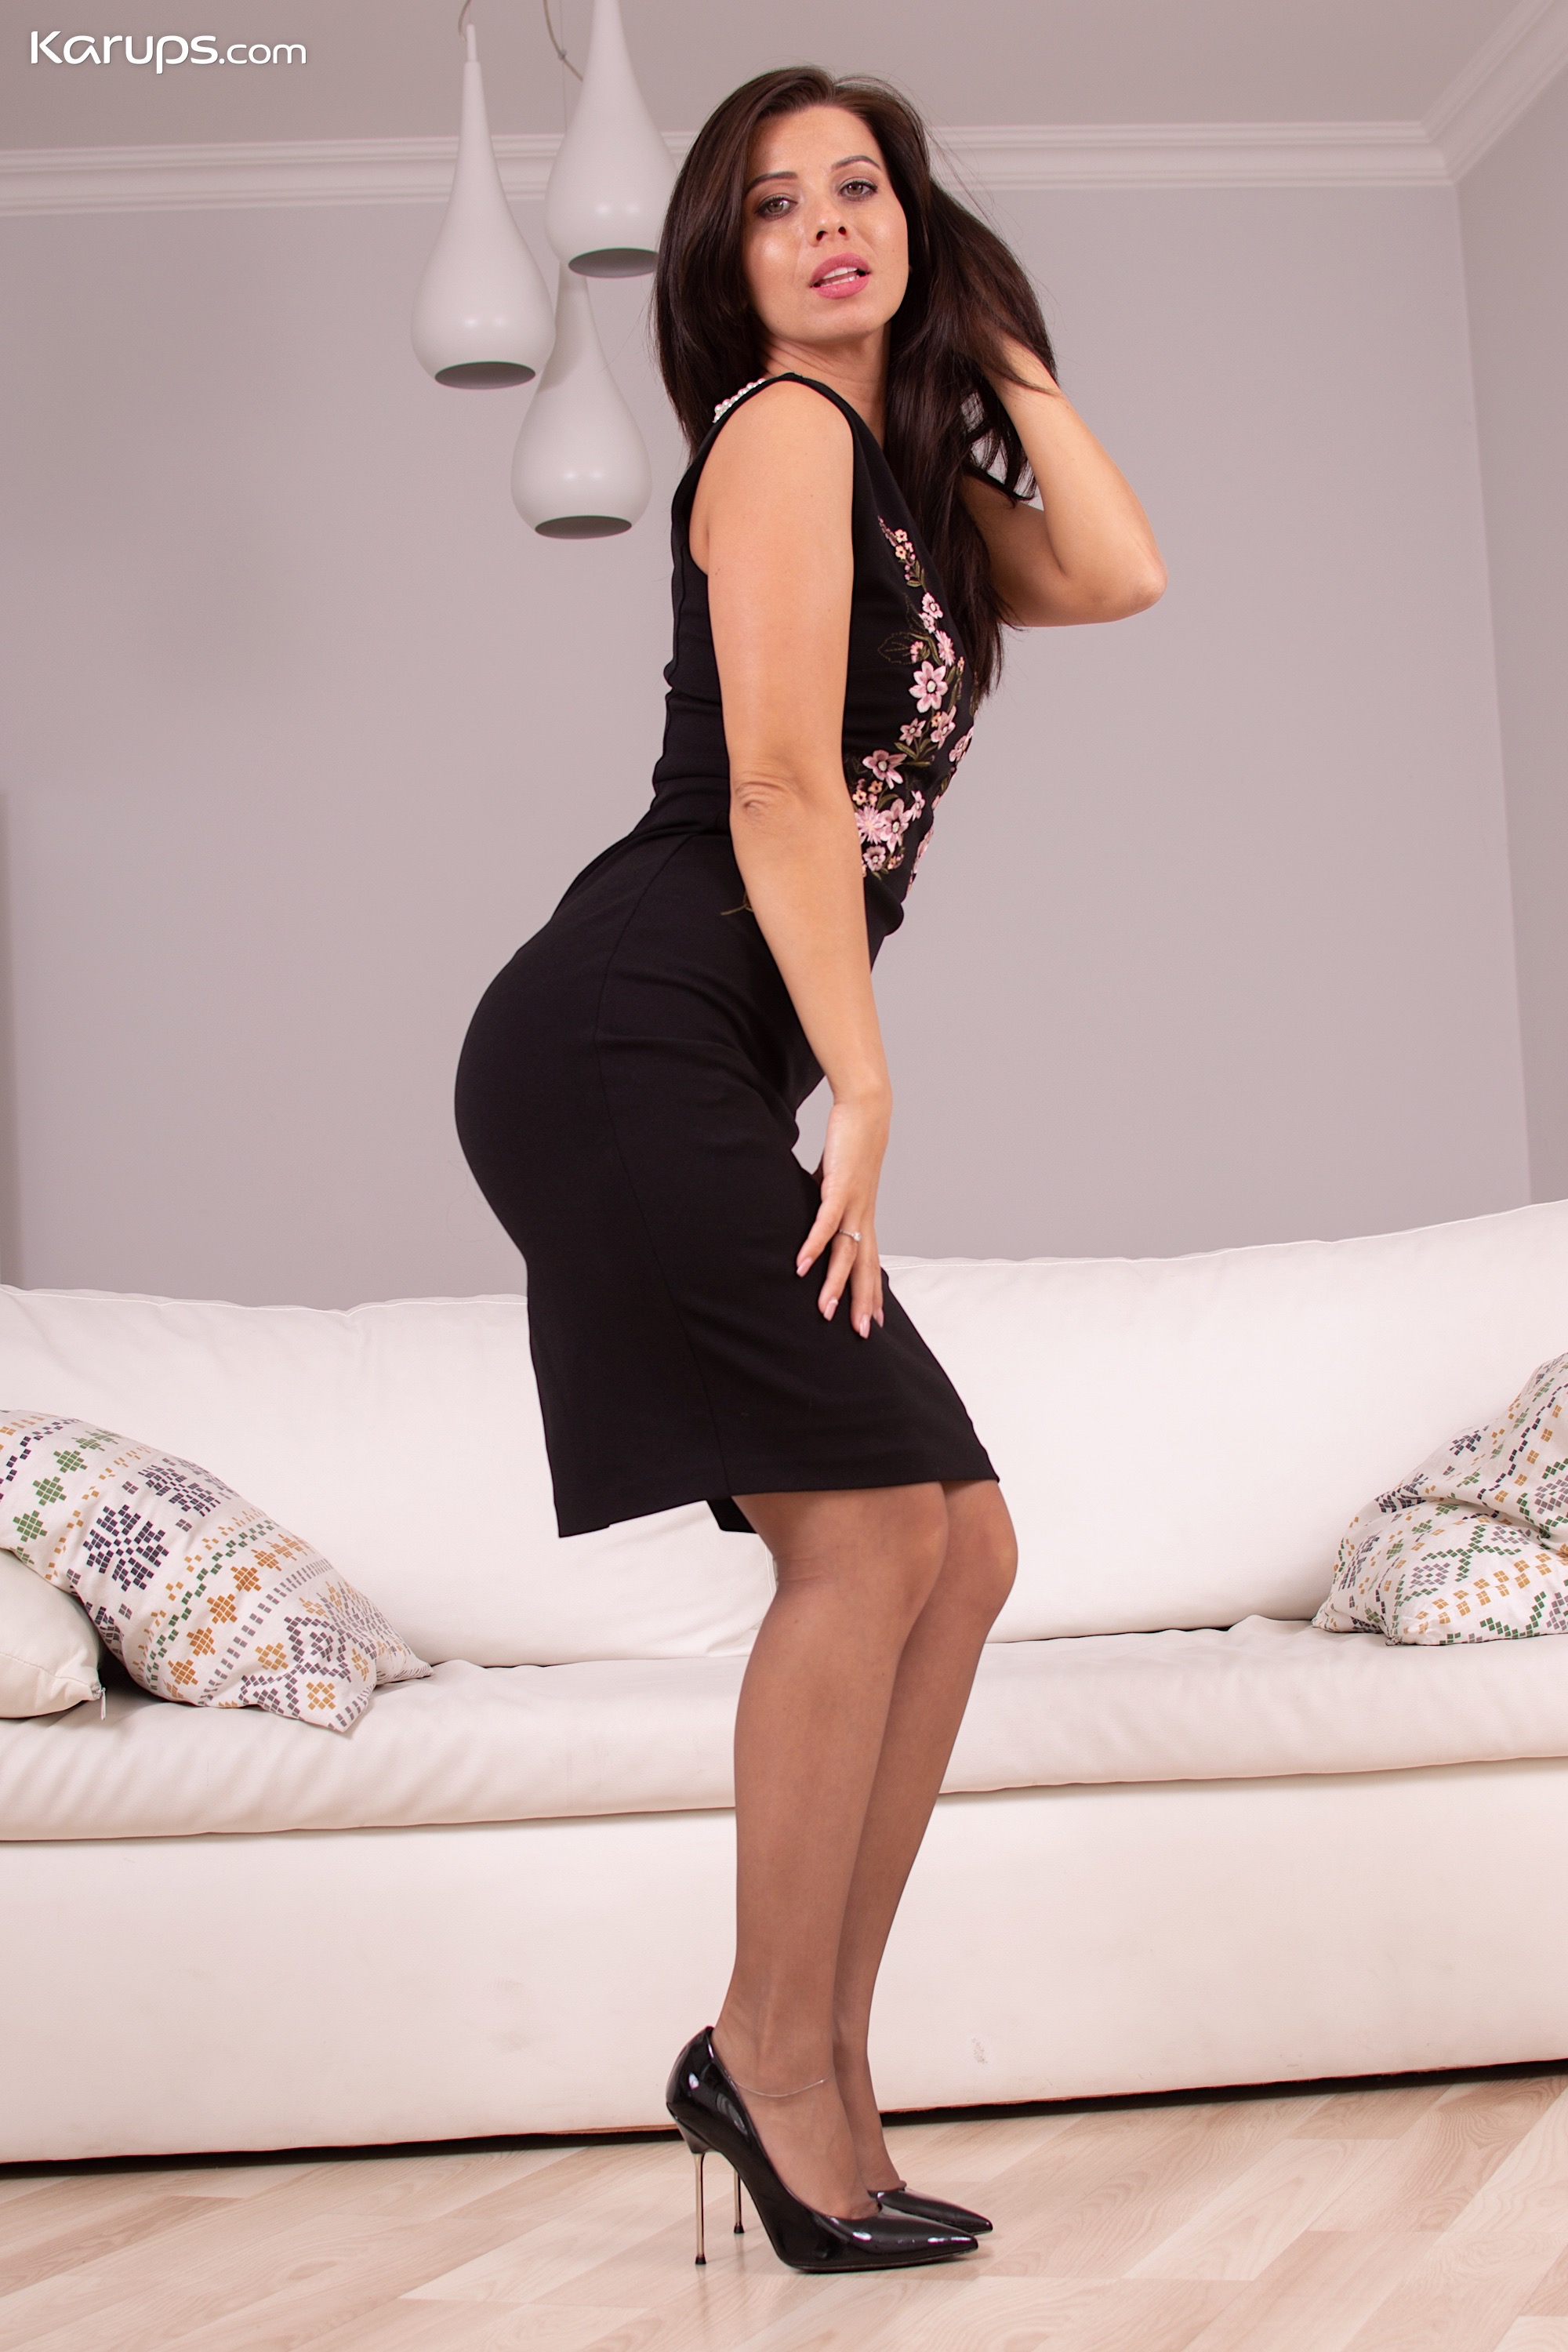 Stunning MILF Vicky Love naked in her heels and stockings